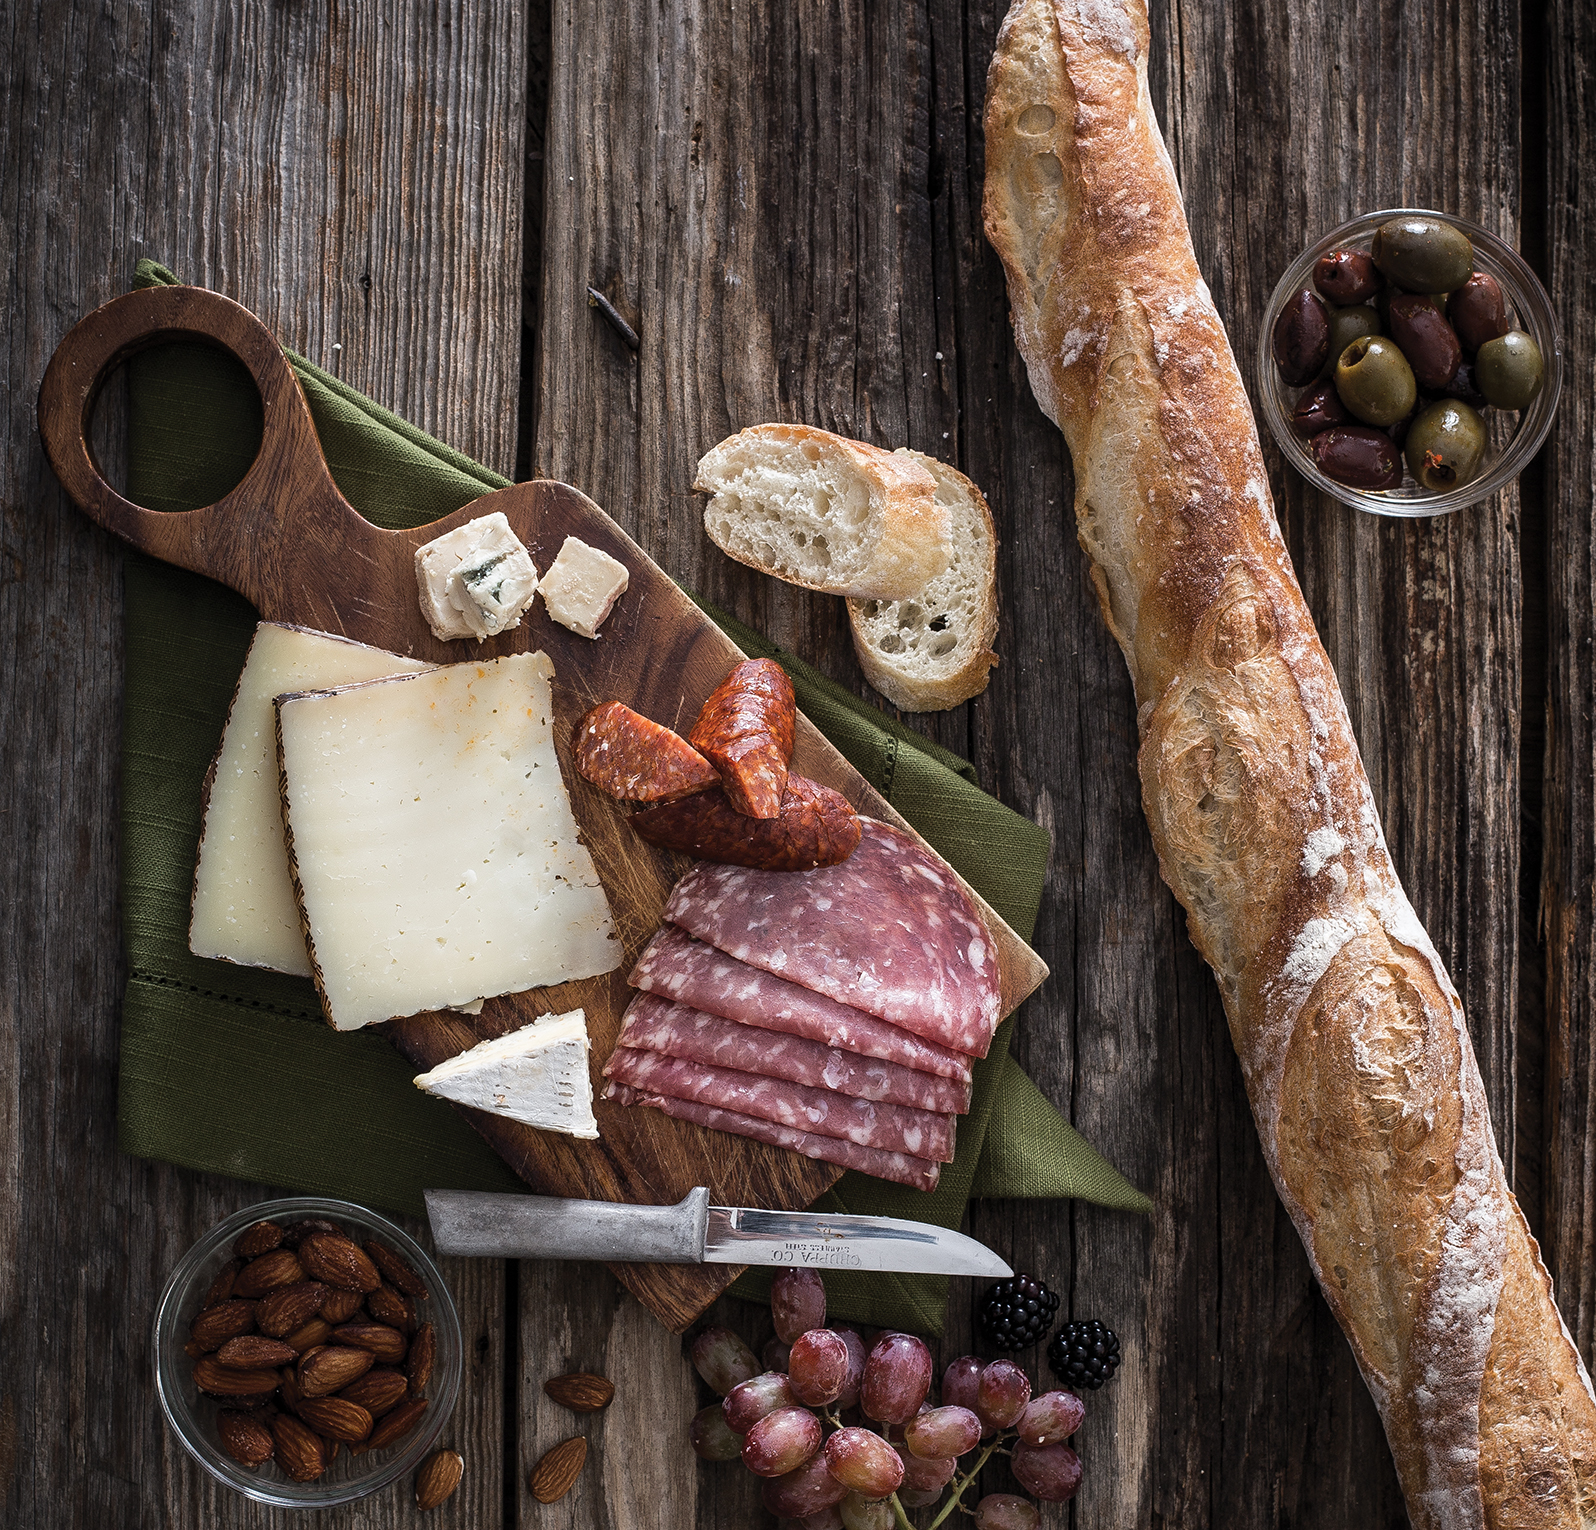 Charcuterie board provided by Boulevard Bread Co.